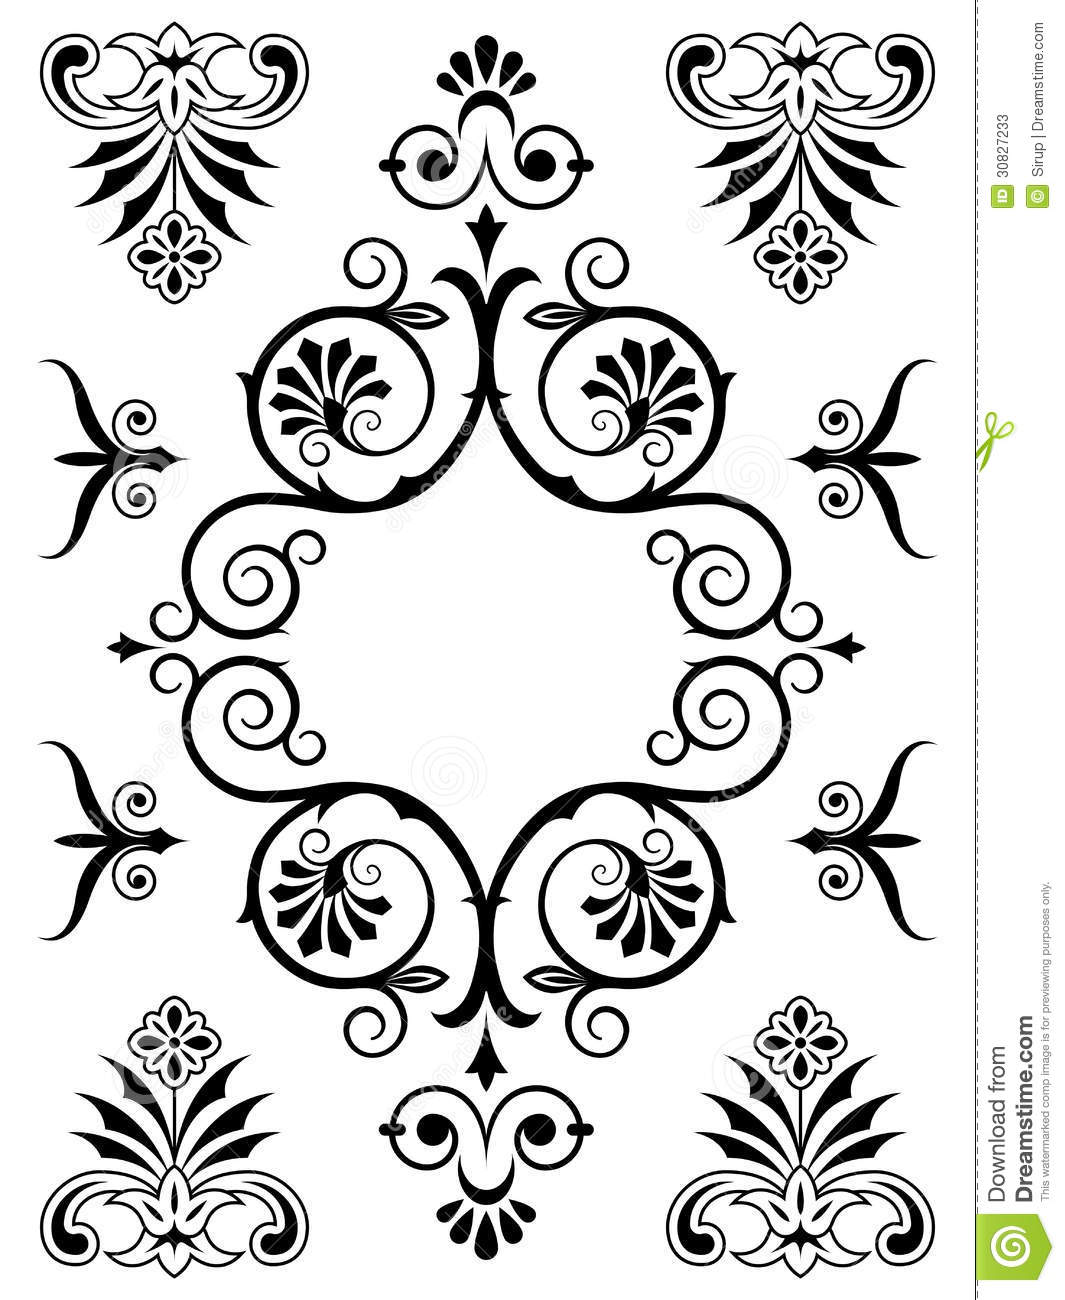 Elements For Design : Ornament design elements stock photos image